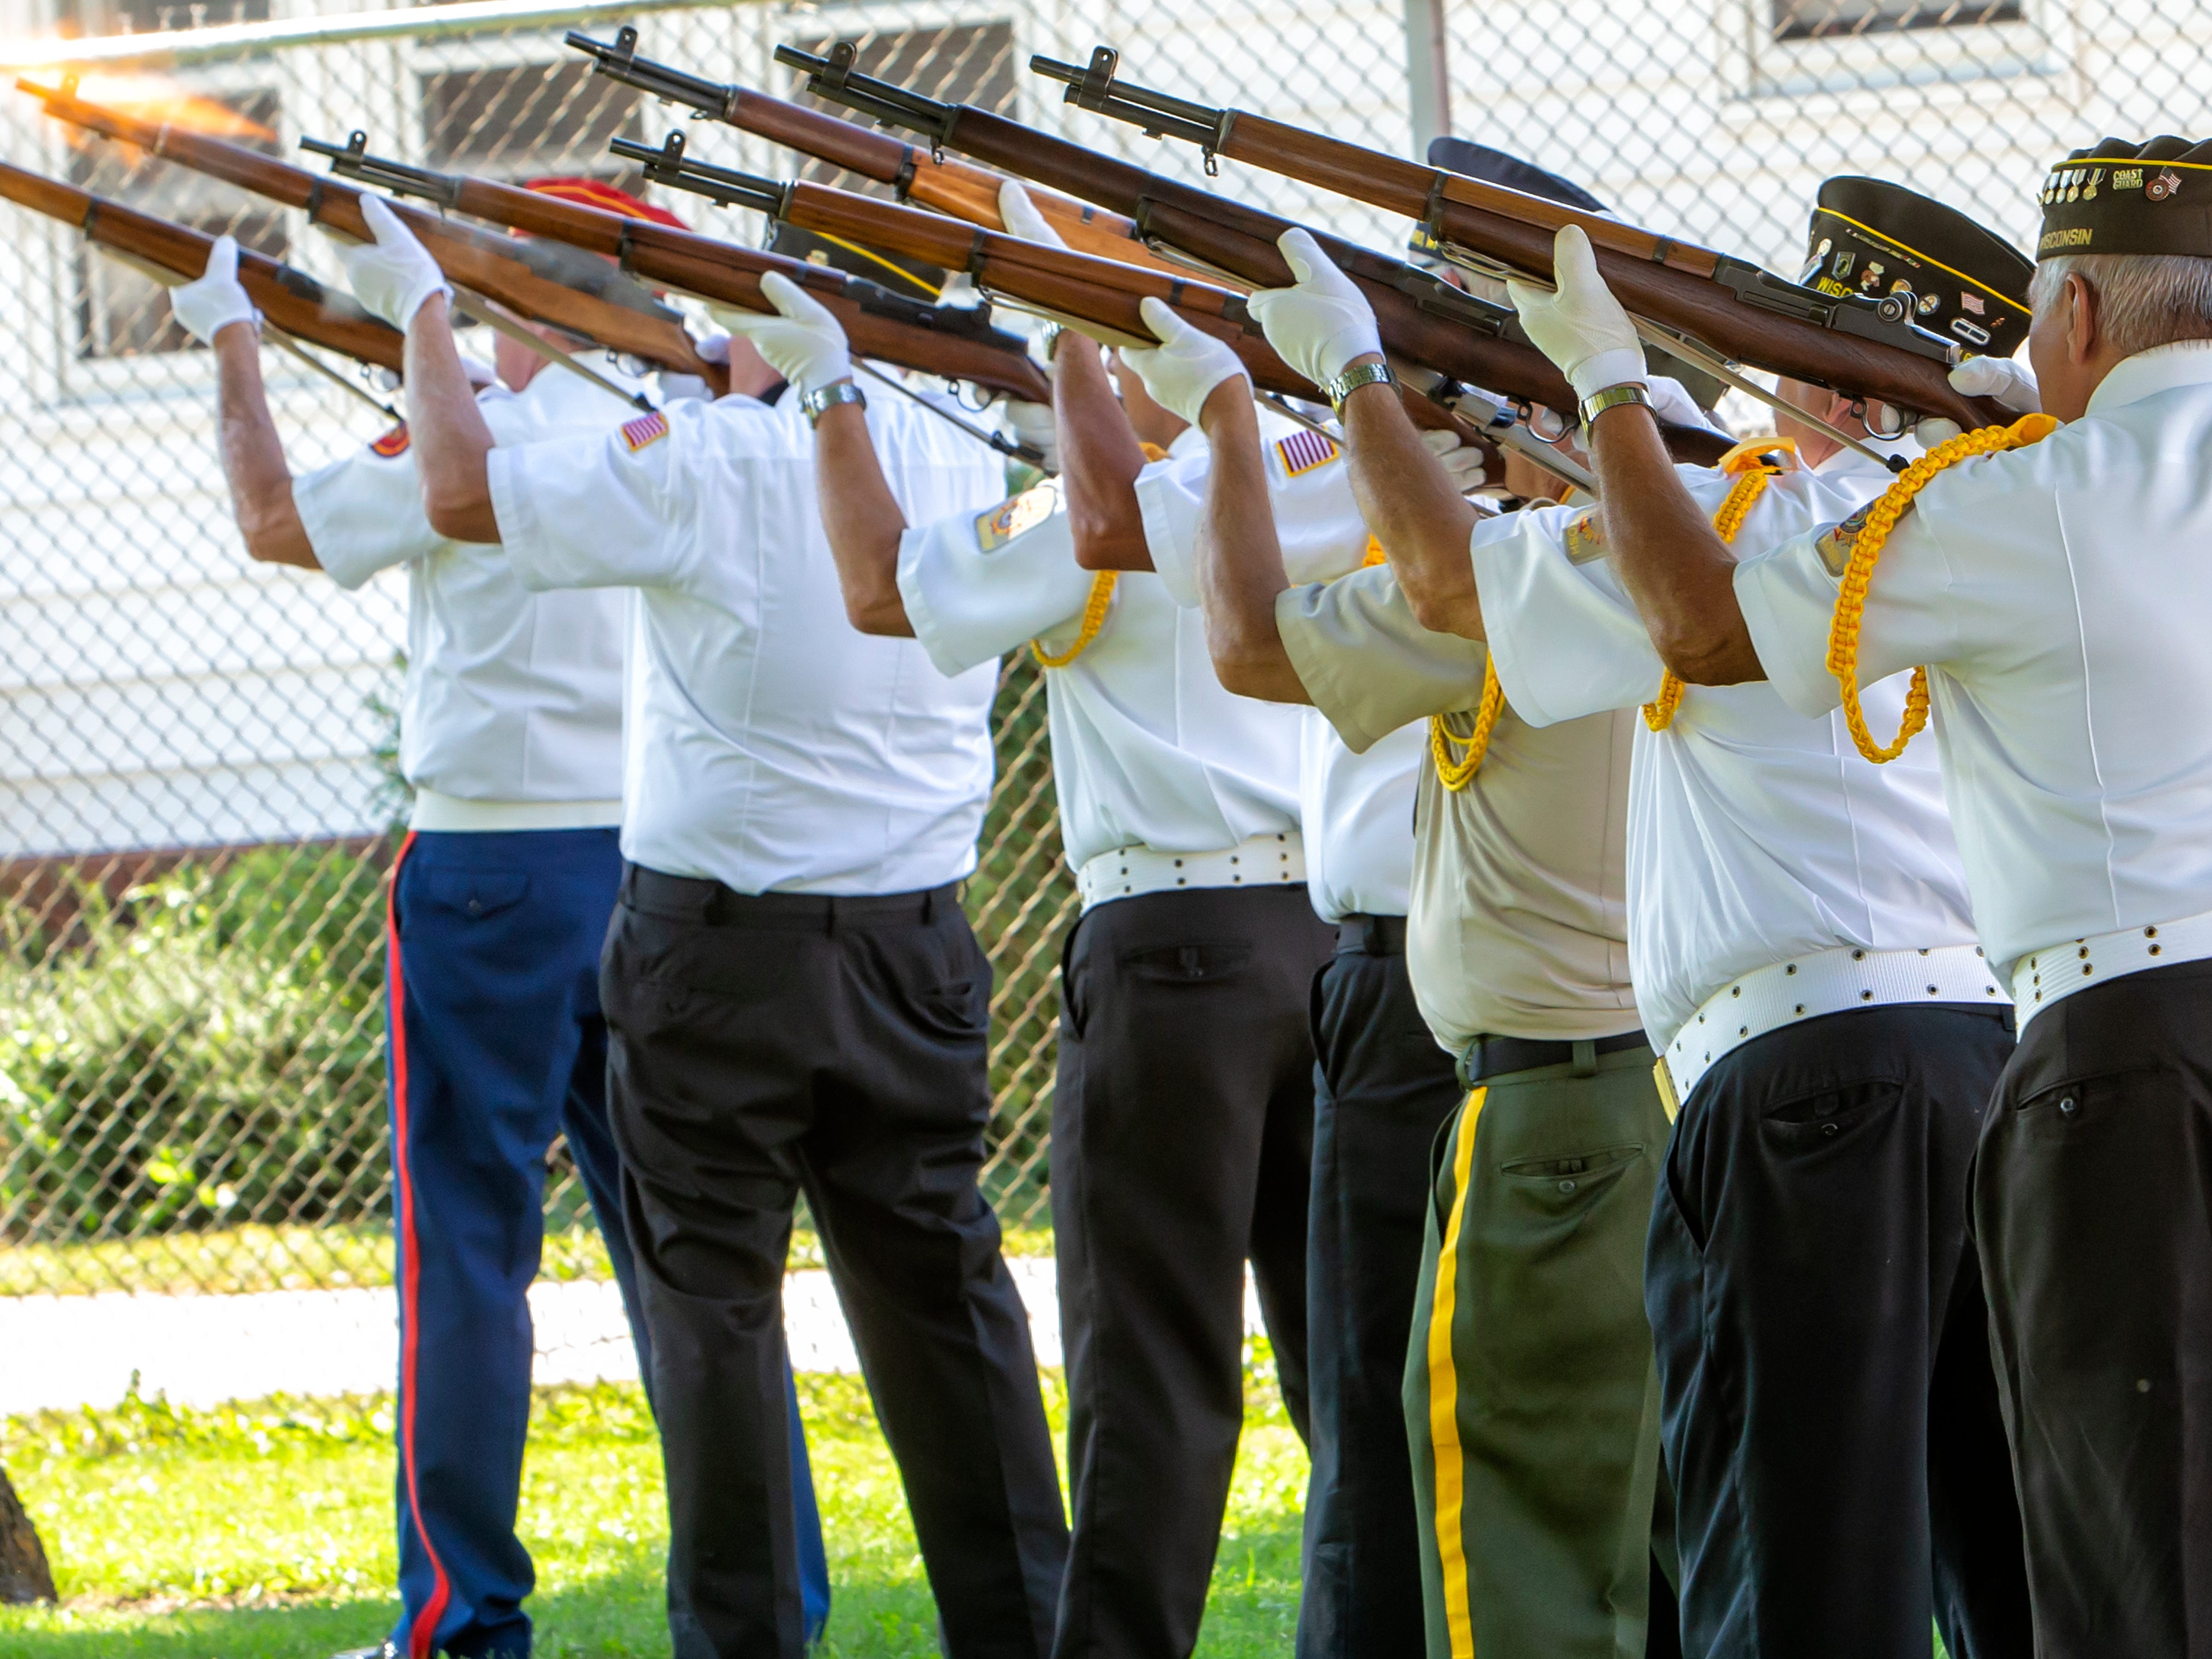 A rifle salute by area veterans took place during the annual POW MIA Remembrance Ceremony at South Park Veterans Memorial on Saturday, September 15, 2018.